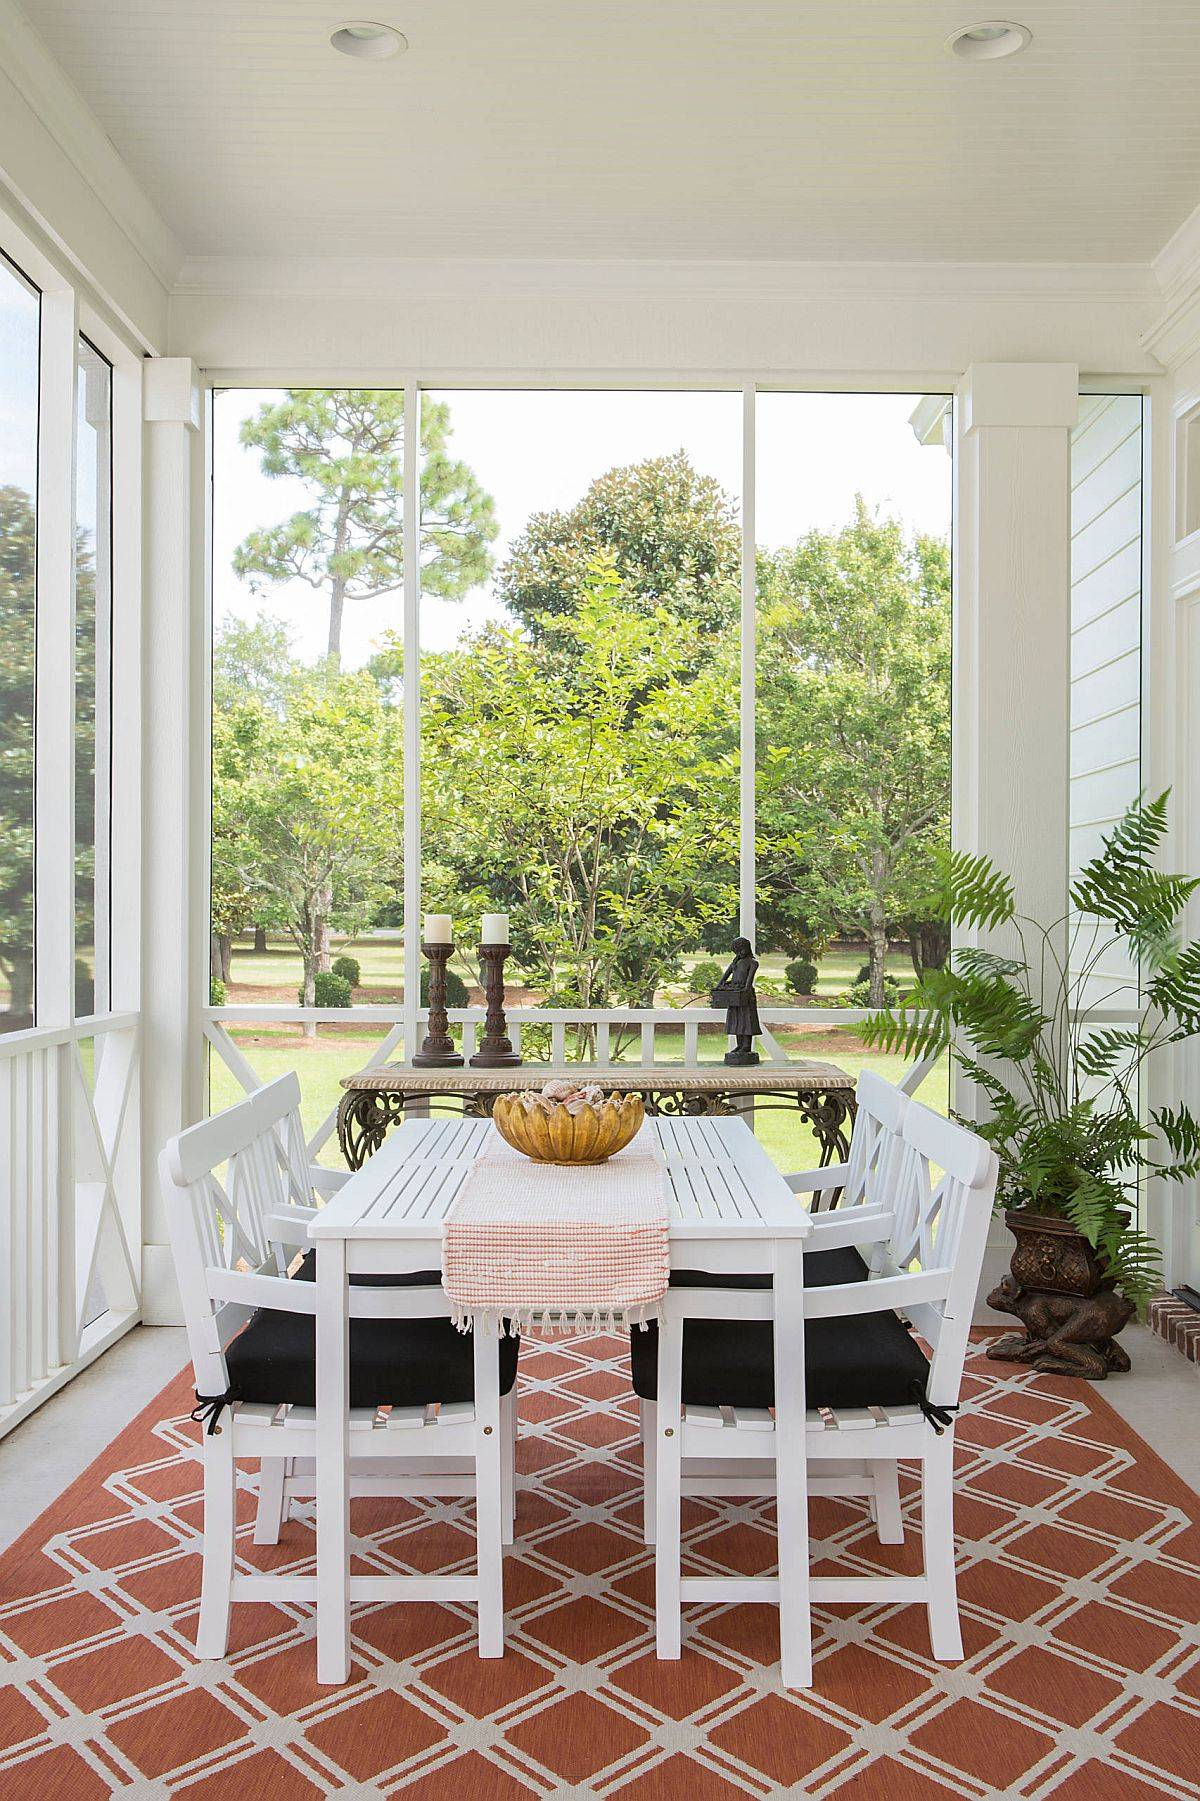 White shabby-chic porch with white decor and a rug that ushers in pops of terracotta